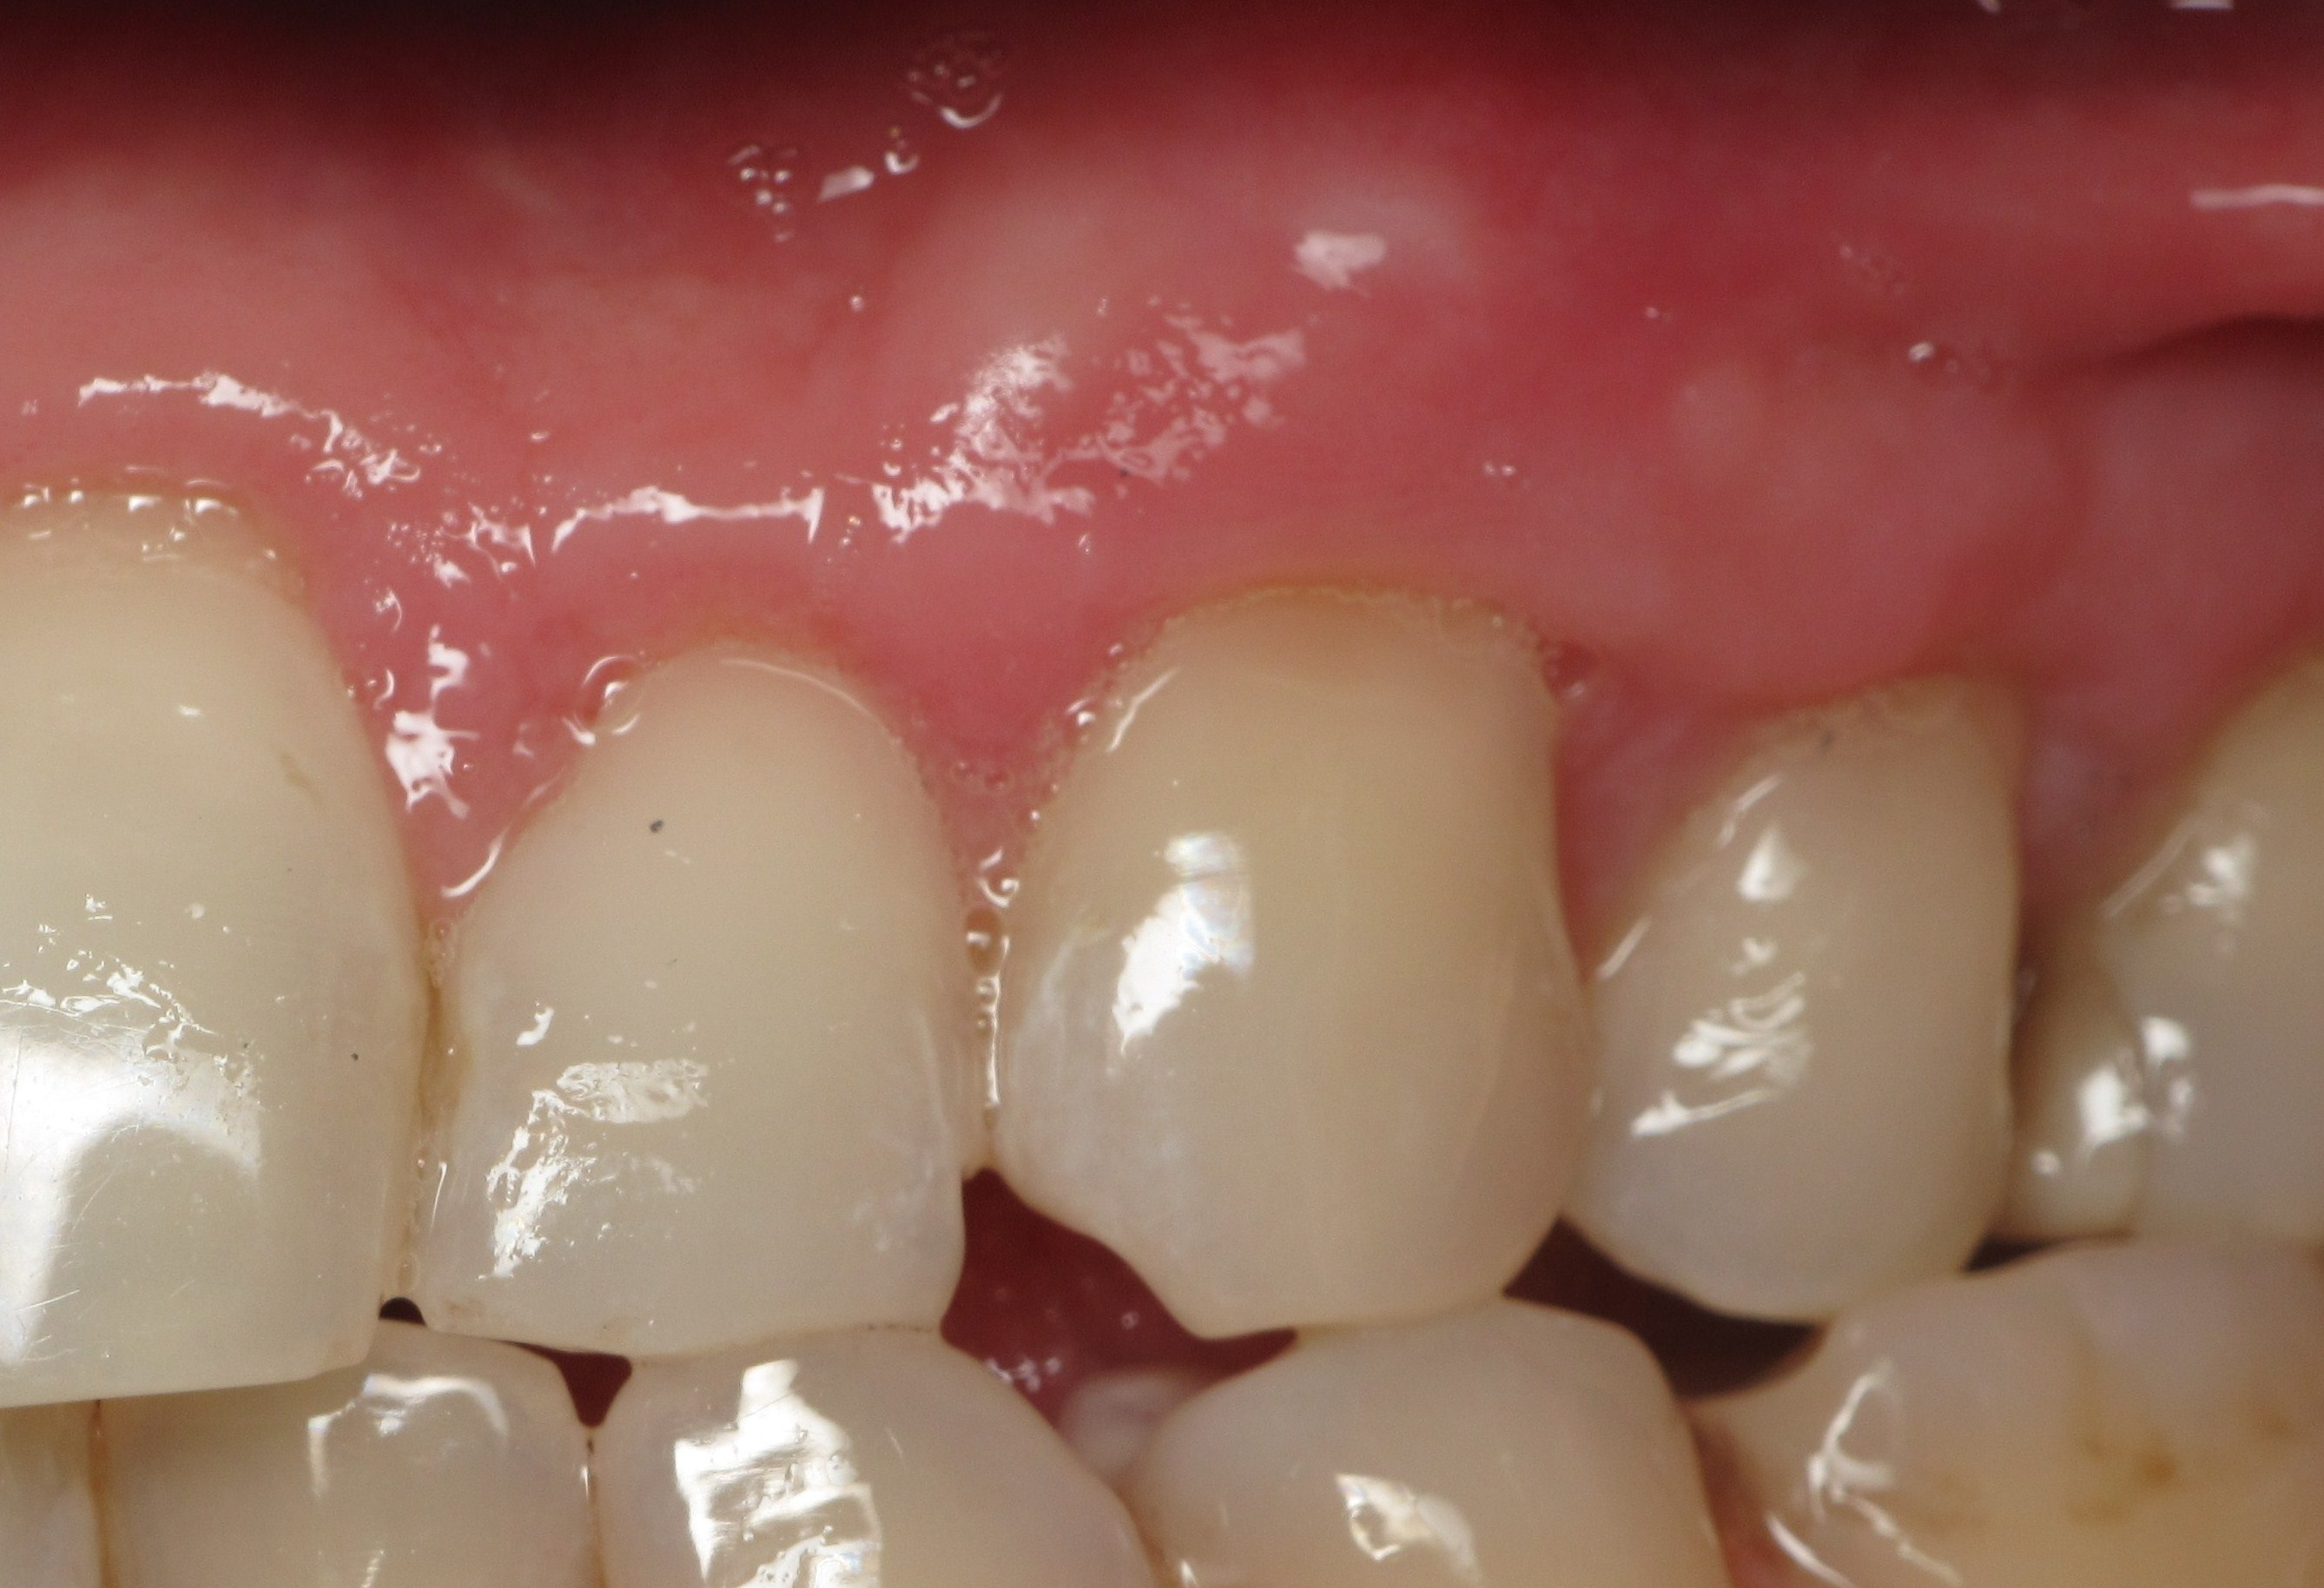 Thin Receding Gums And Dental Implants What S Important Video By